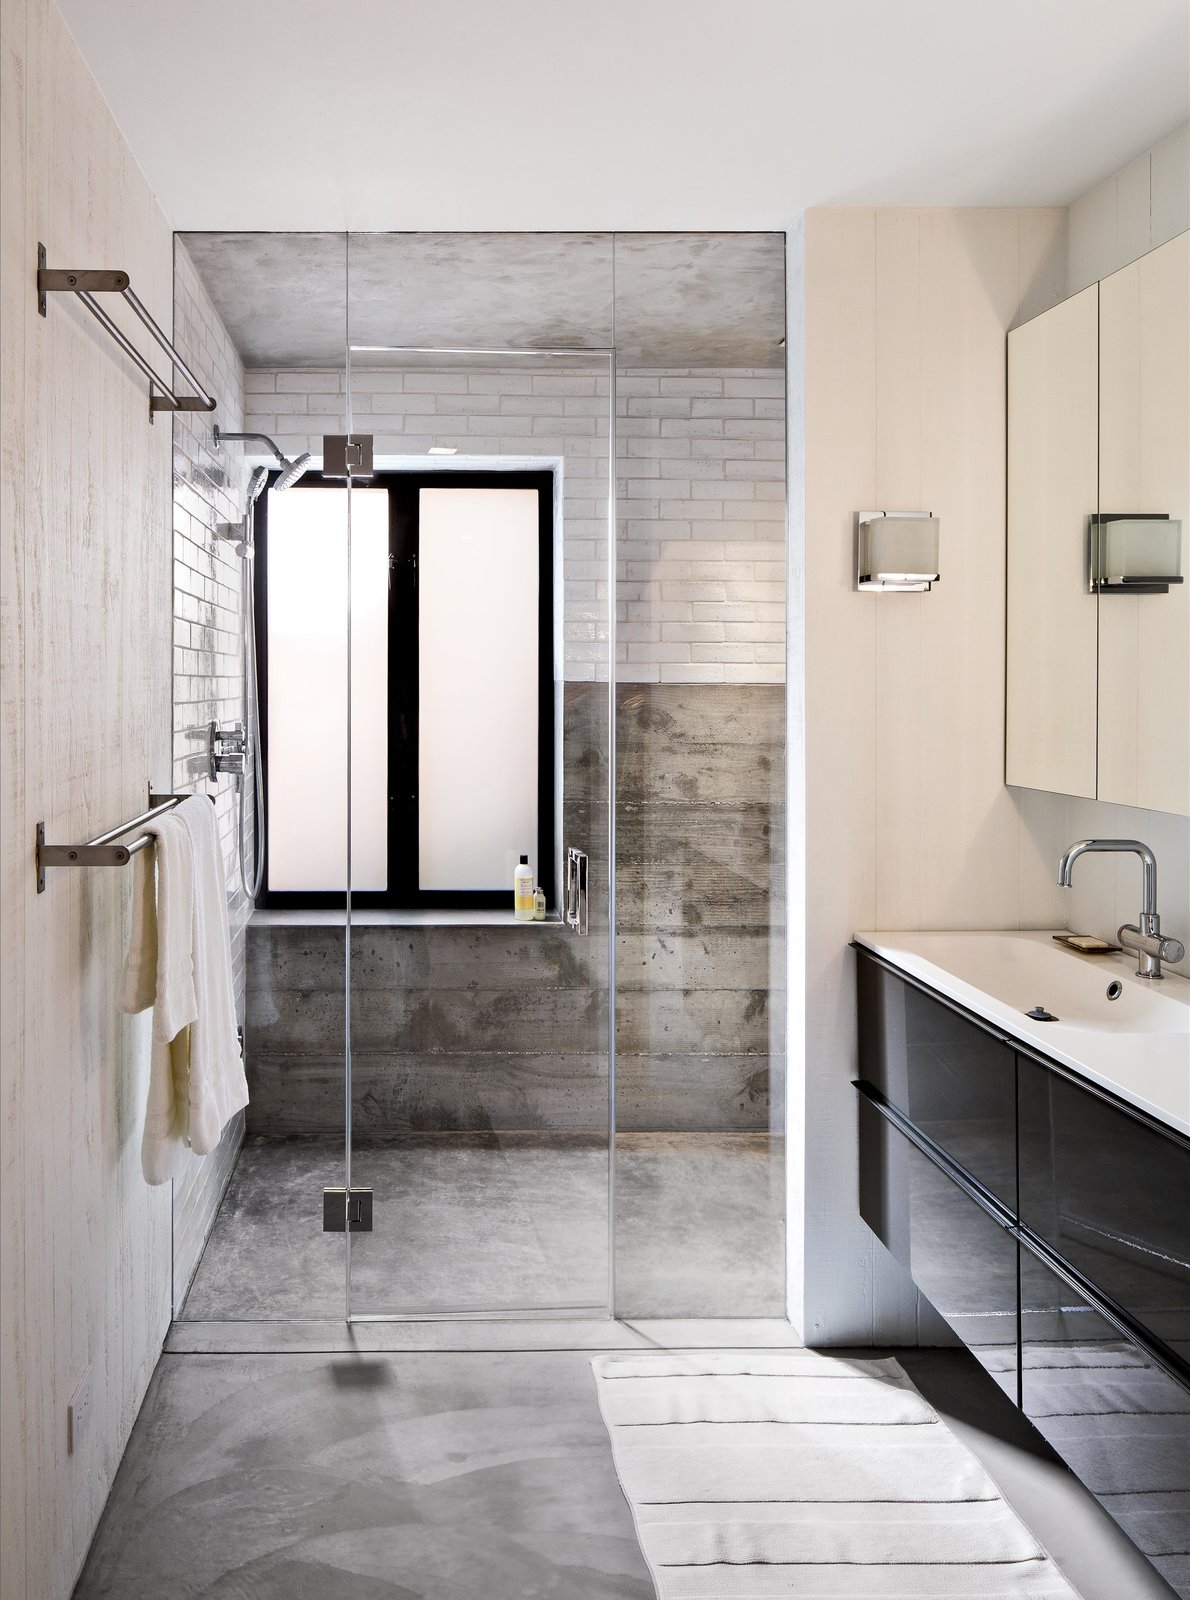 On the house's lower level, Schicketanz's guests have a bathroom complete with a steam shower to themselves. Anodized aluminum windows pop against white subway tile from Waterworks. The vanity is from Ikea and the fixtures from Hansgrohe.